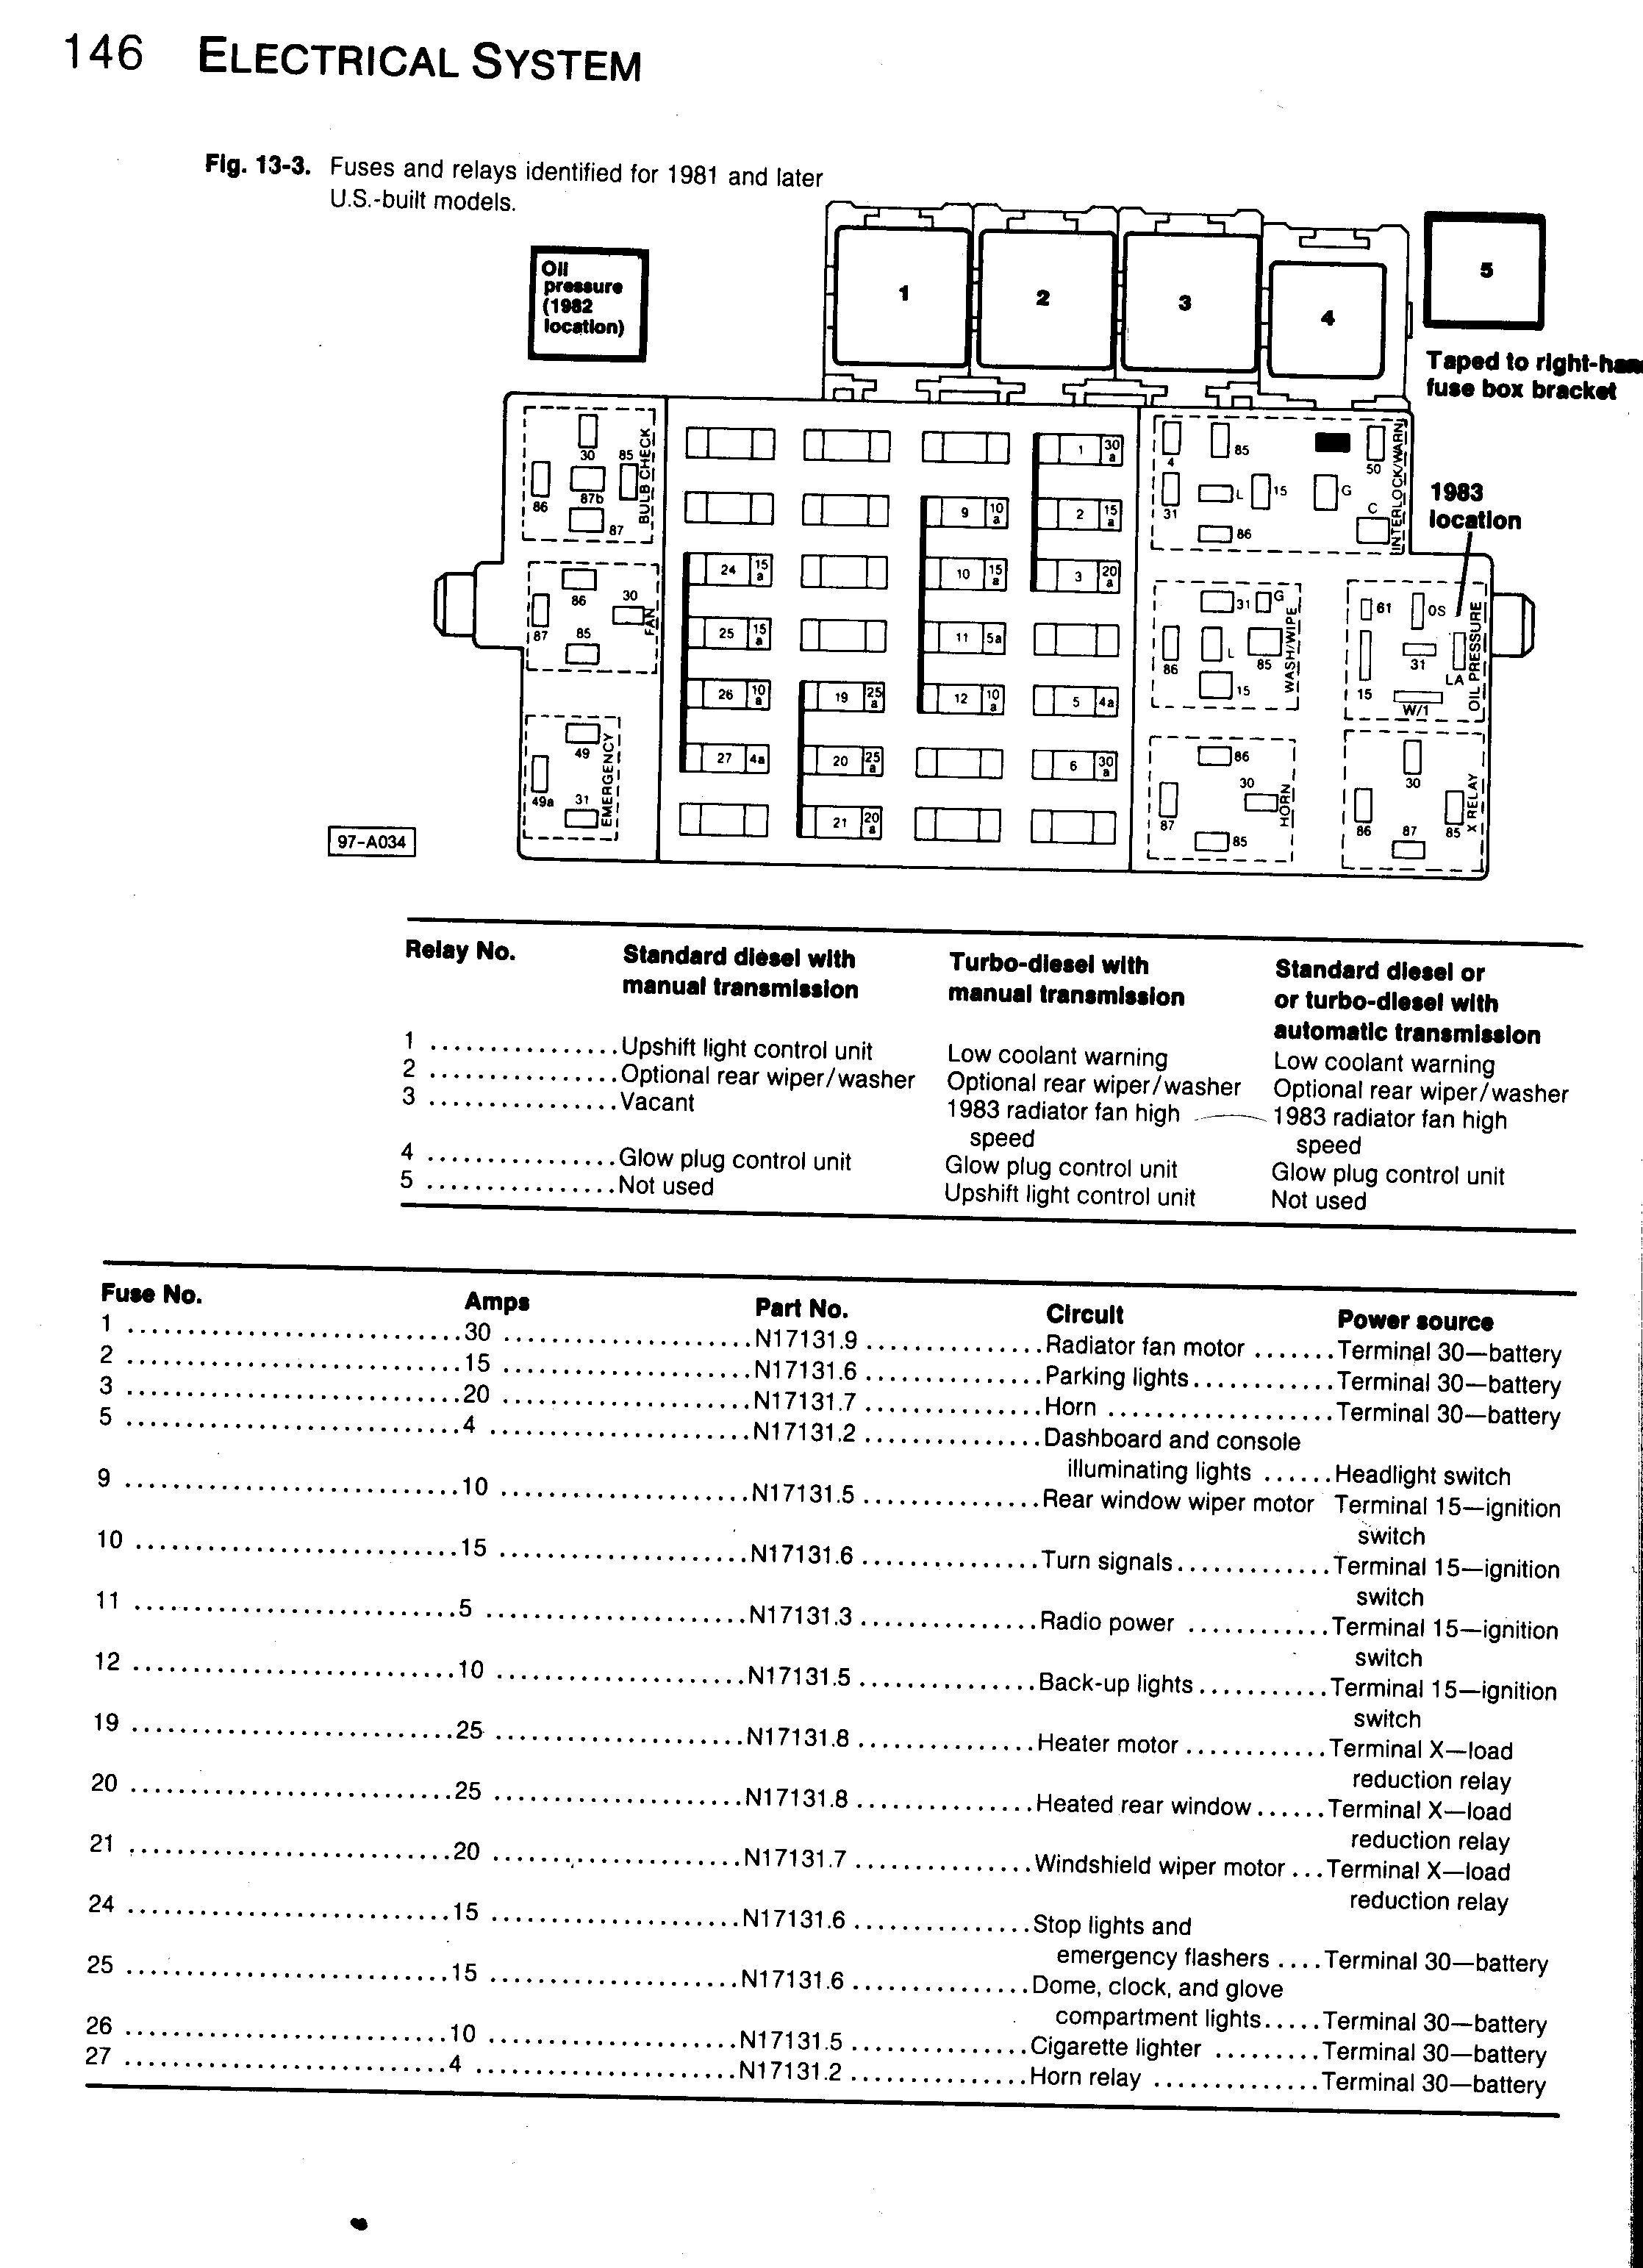 gli fuse box online schematics diagram rh delvato co 2006 Jetta 2.5 Fuse  Diagram 2009 VW Jetta Fuse Box Diagram